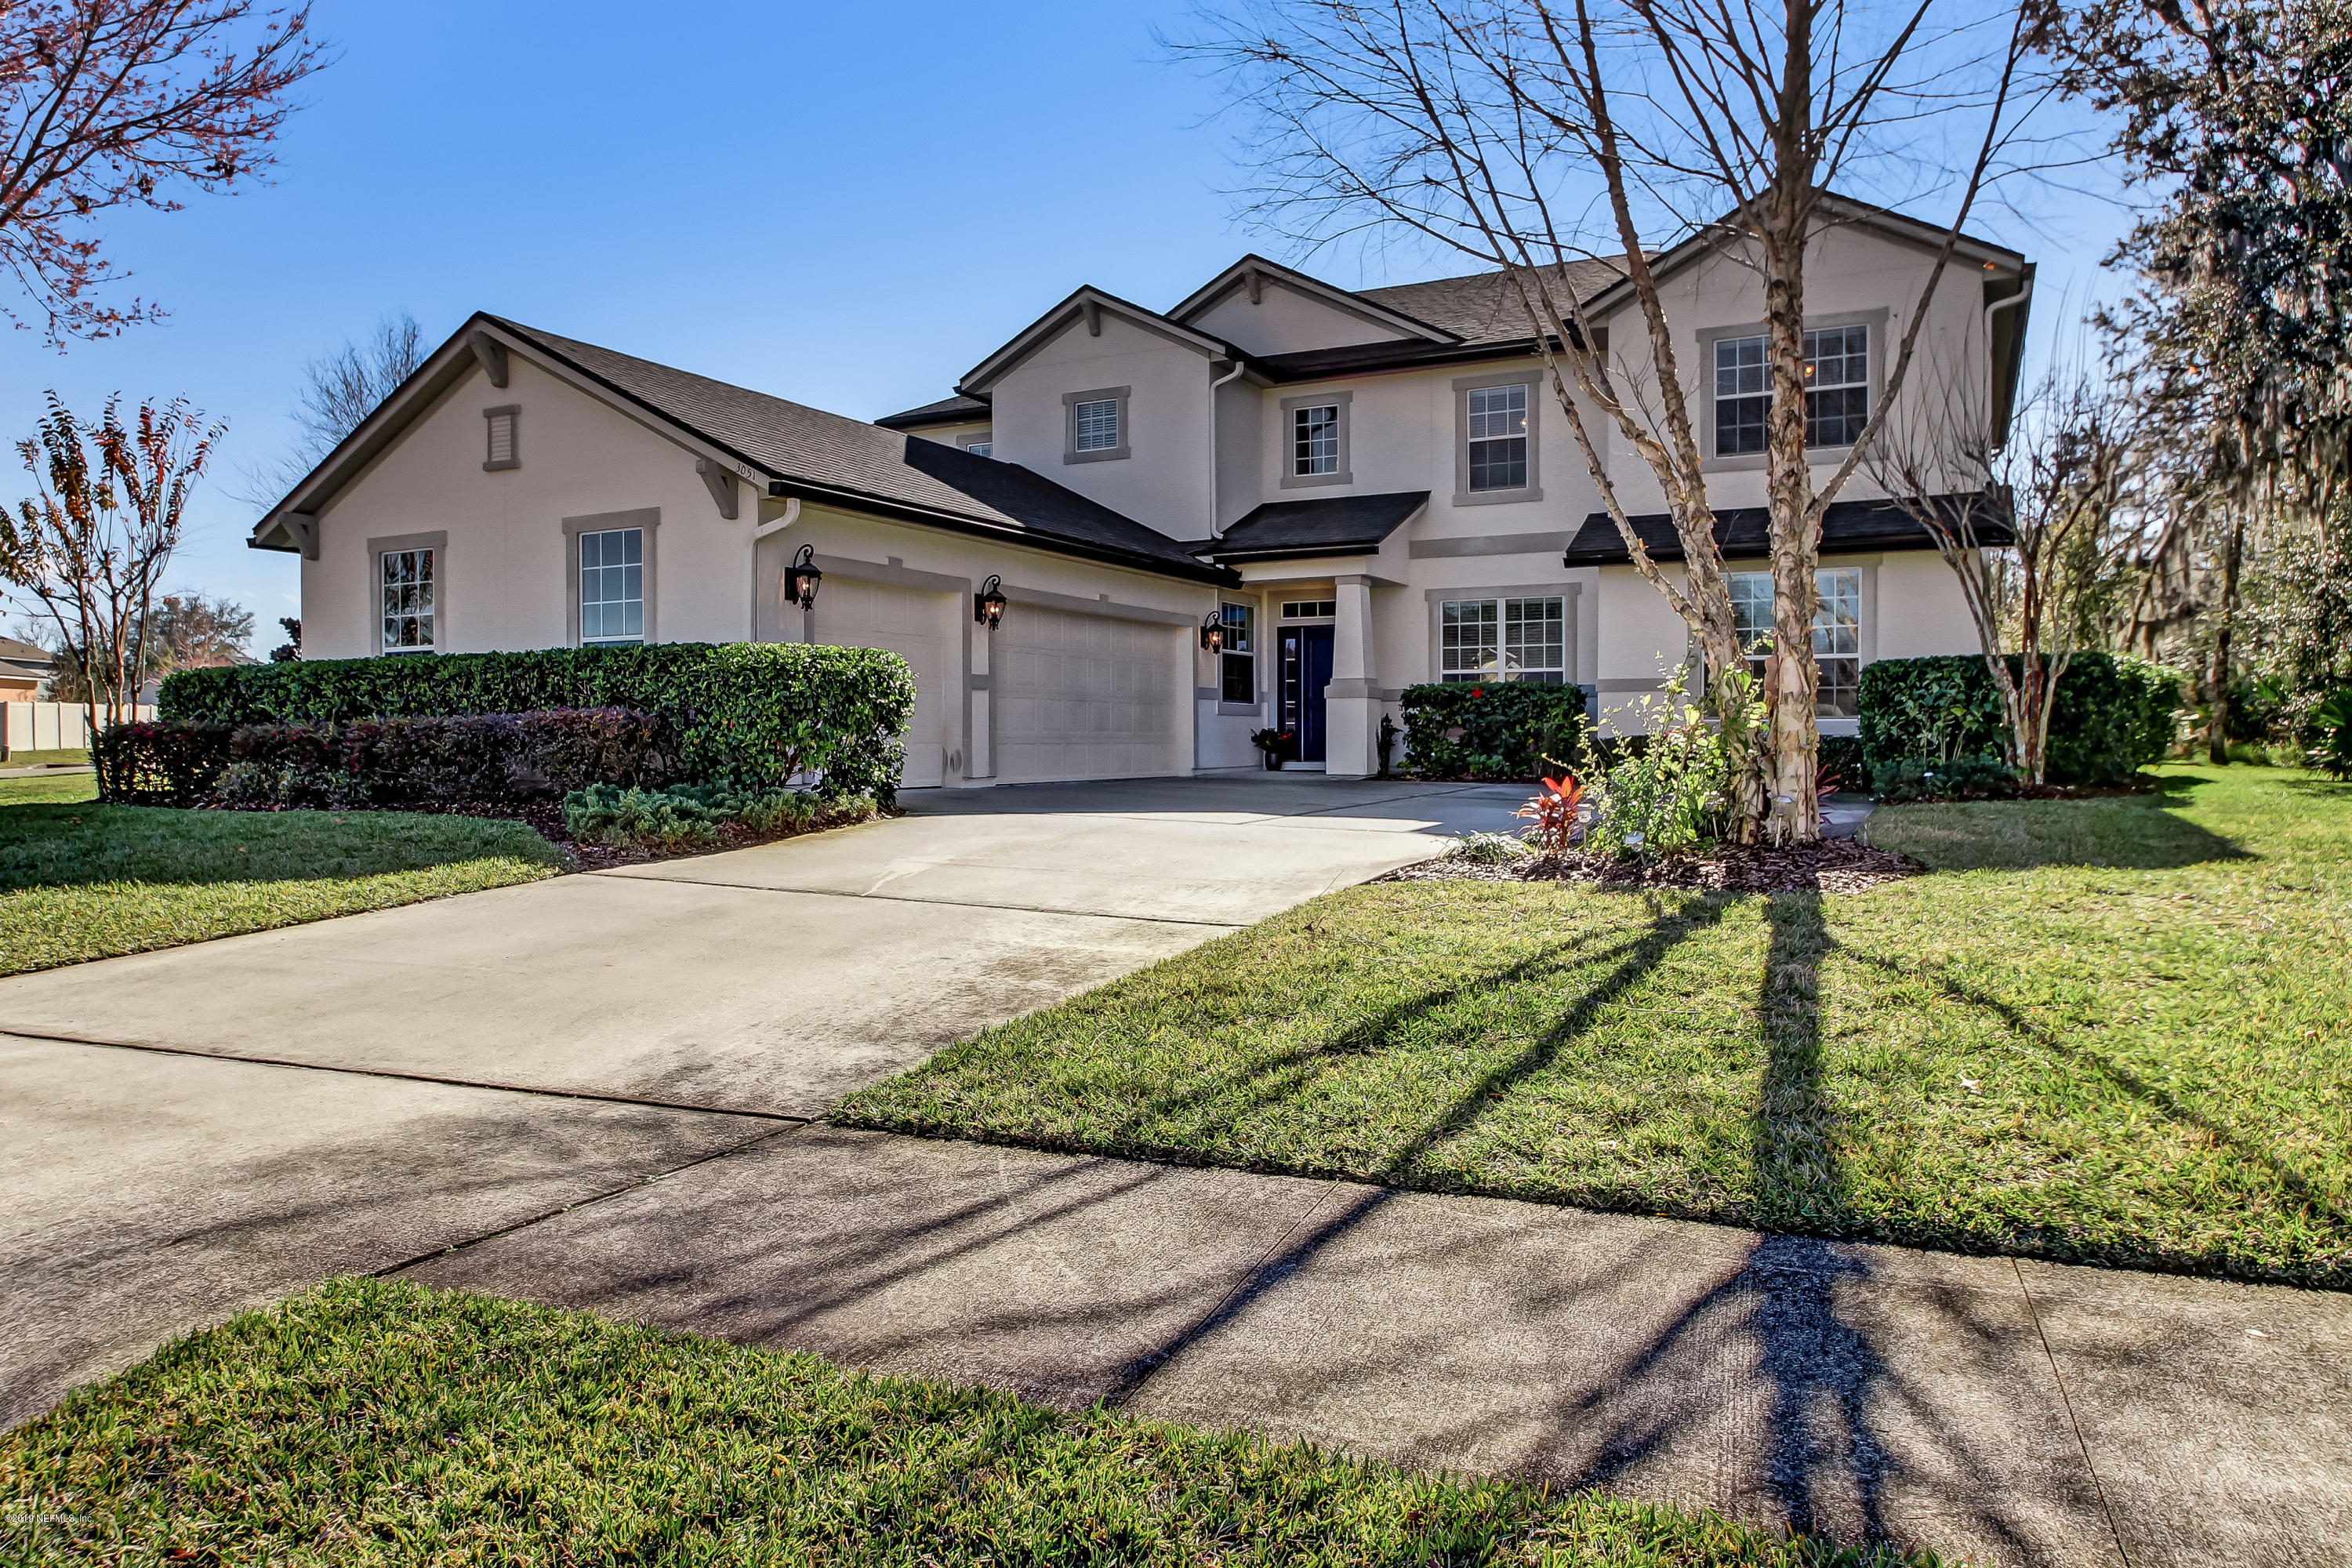 3051 PLANTATION RIDGE, GREEN COVE SPRINGS, FLORIDA 32043, 5 Bedrooms Bedrooms, ,3 BathroomsBathrooms,Residential - single family,For sale,PLANTATION RIDGE,976563